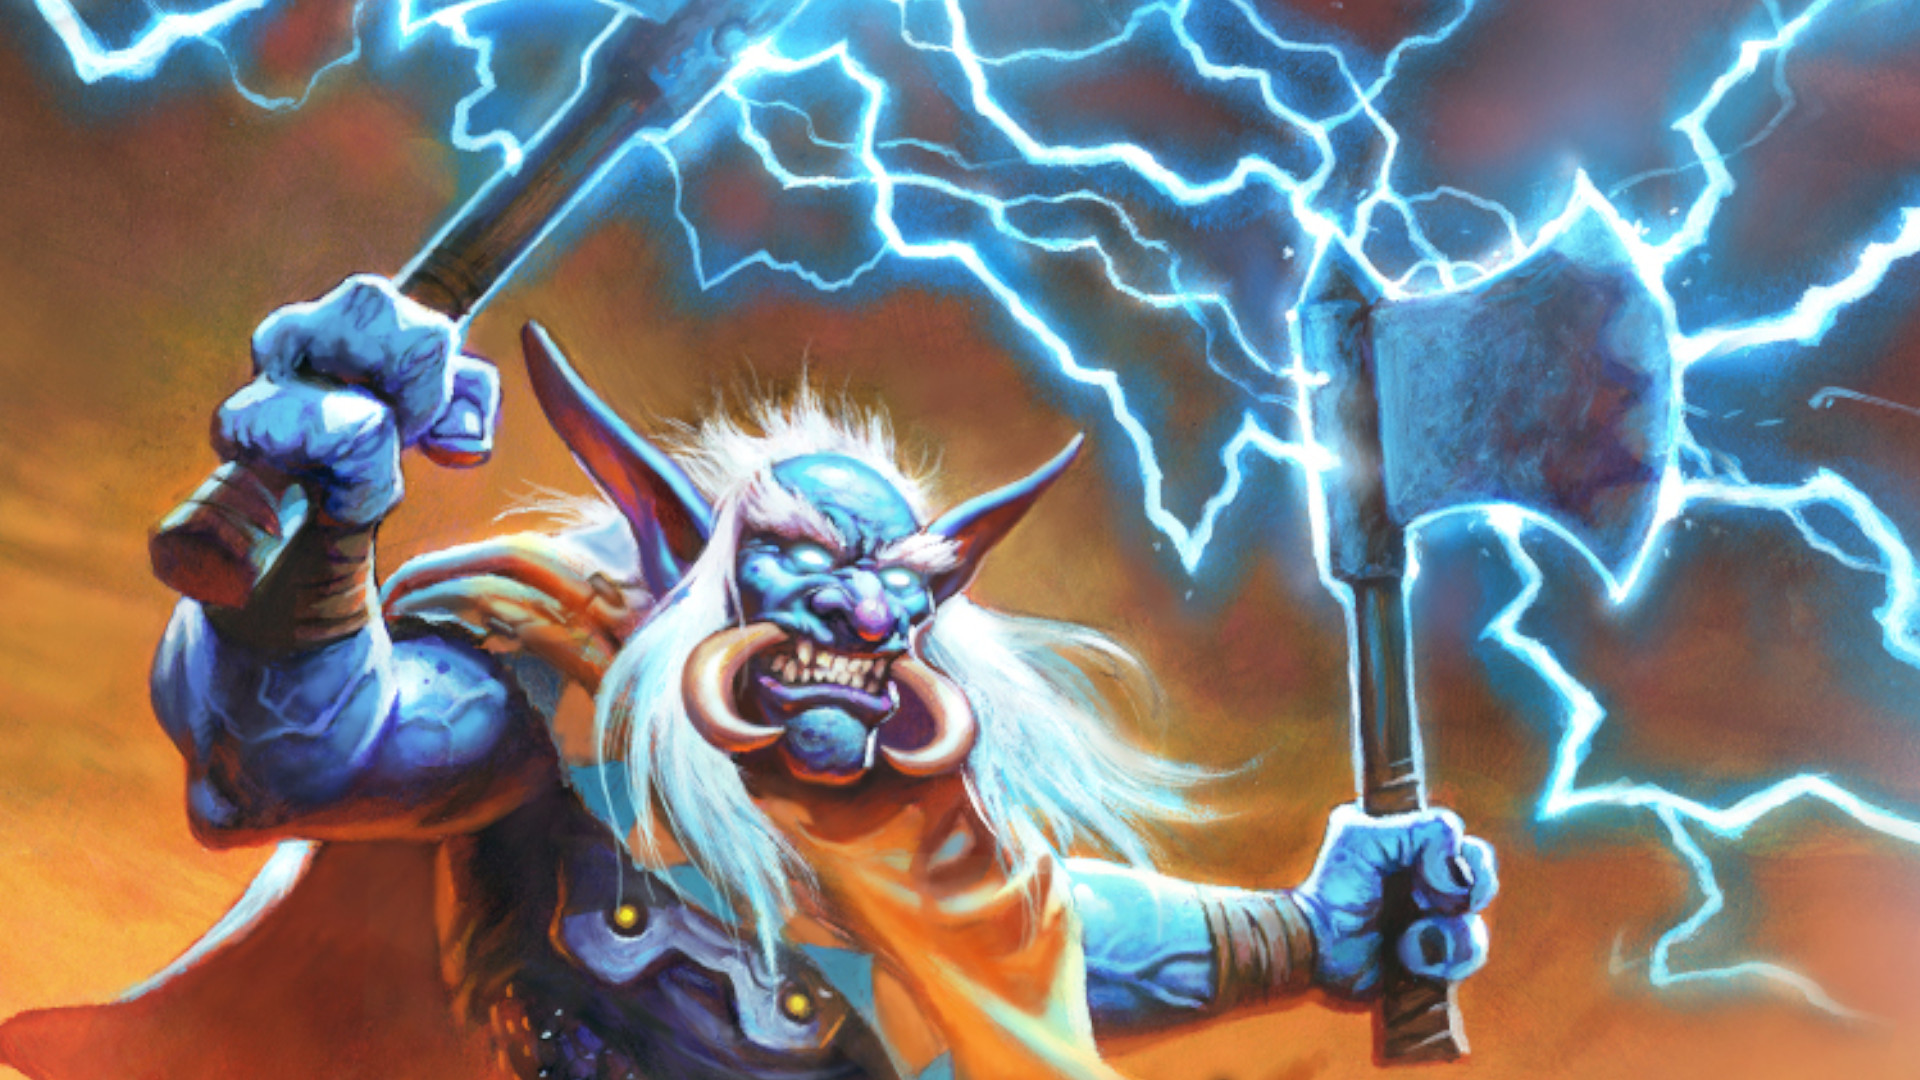 Hearthstone: Forged in the Barrens release date set for the end of March